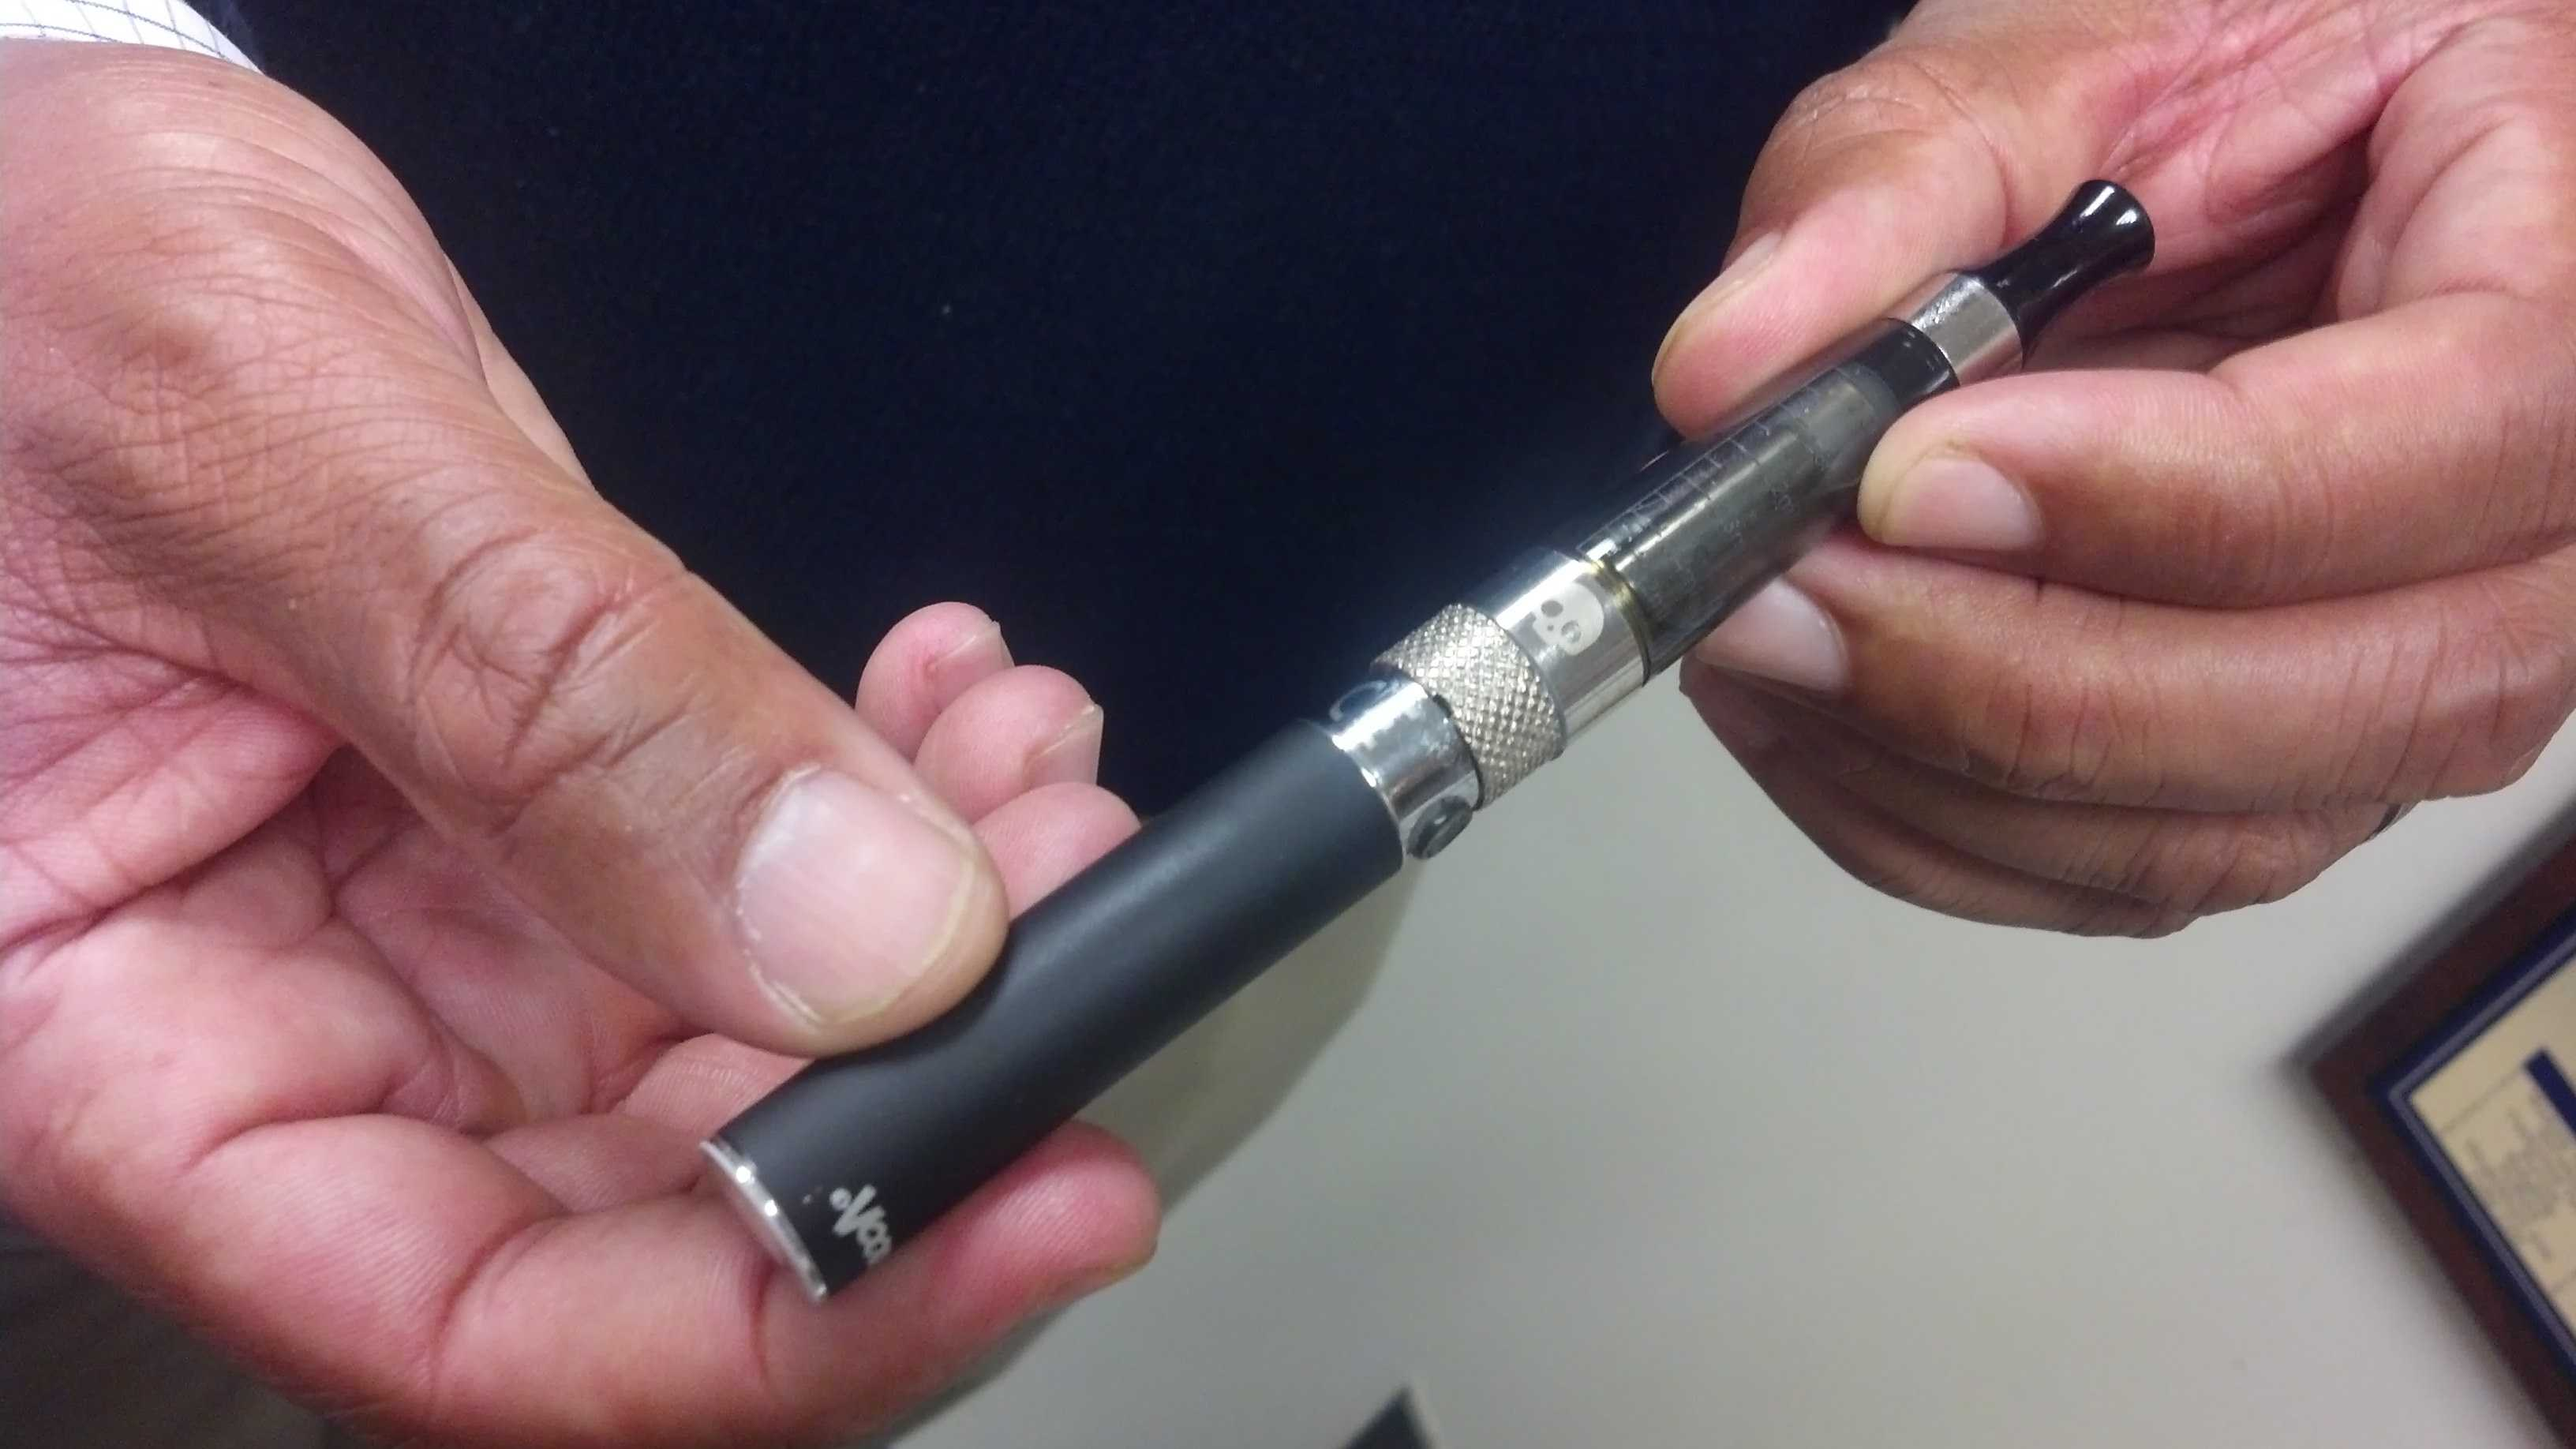 A smokeless pen.